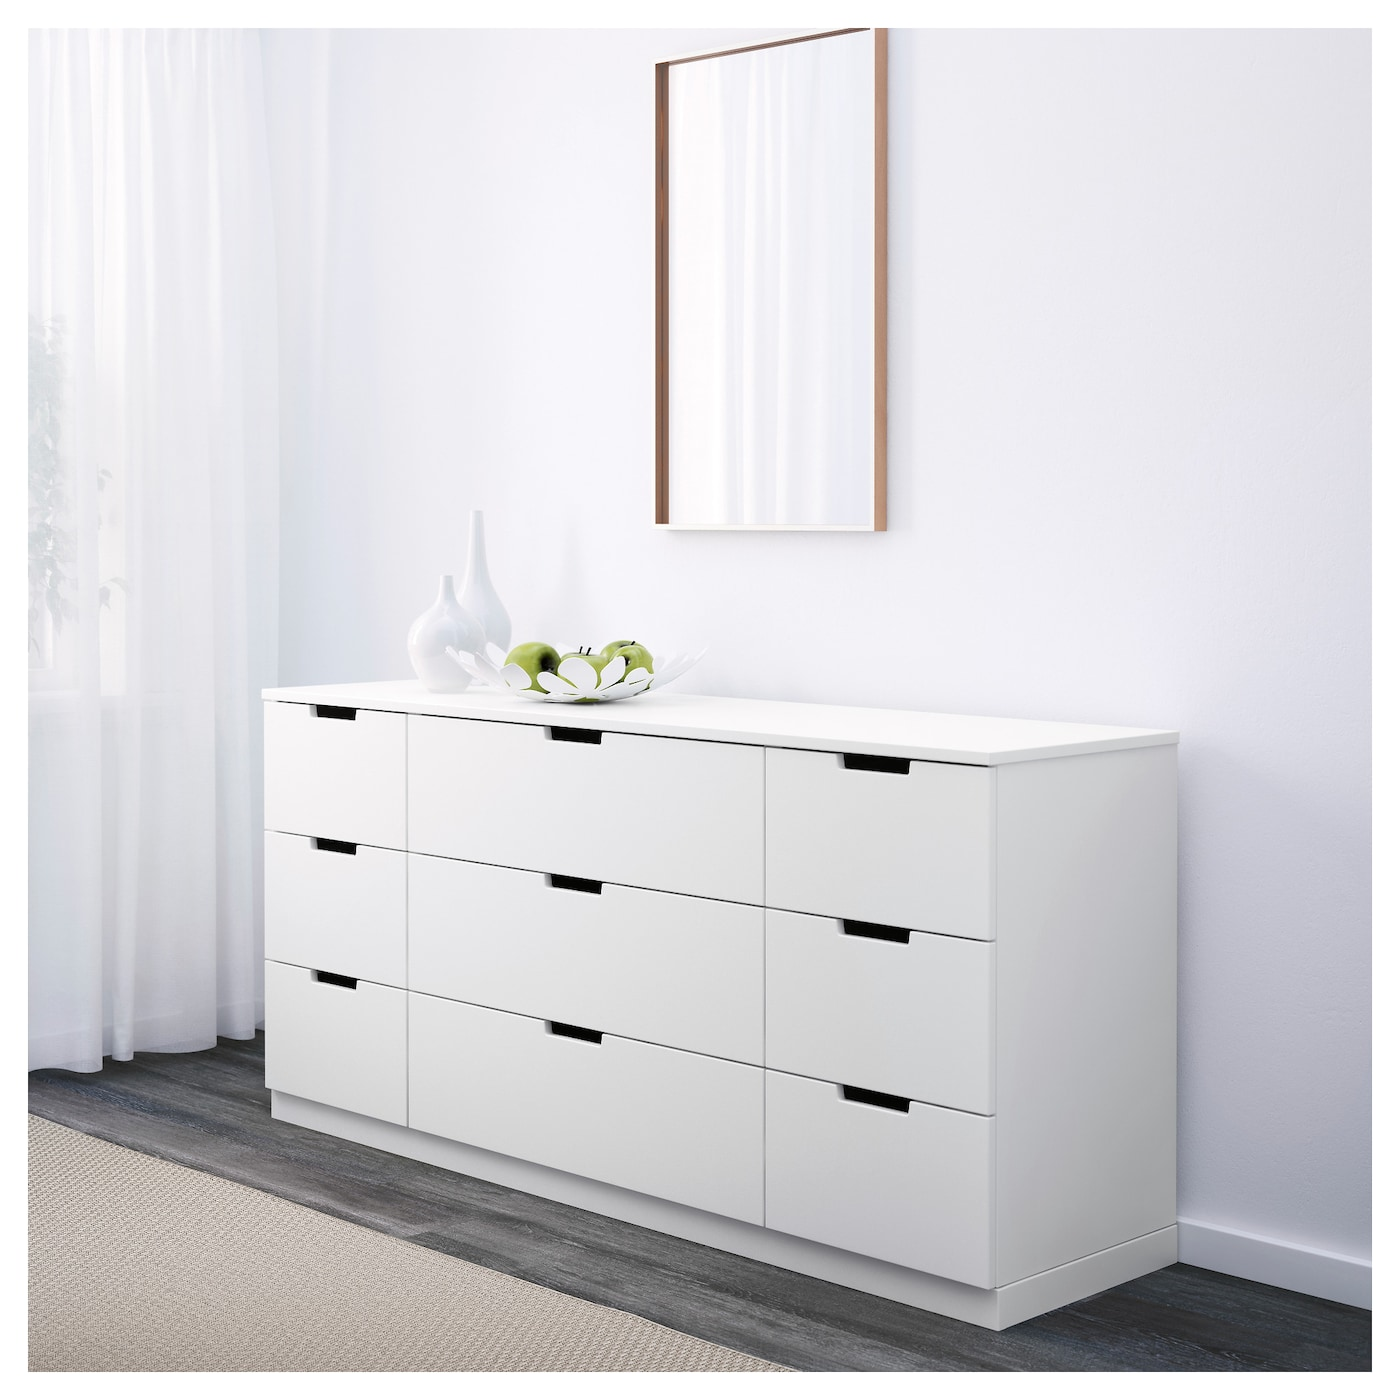 NORDLI Chest Of Drawers White X Cm IKEA - Ikea chest of drawers